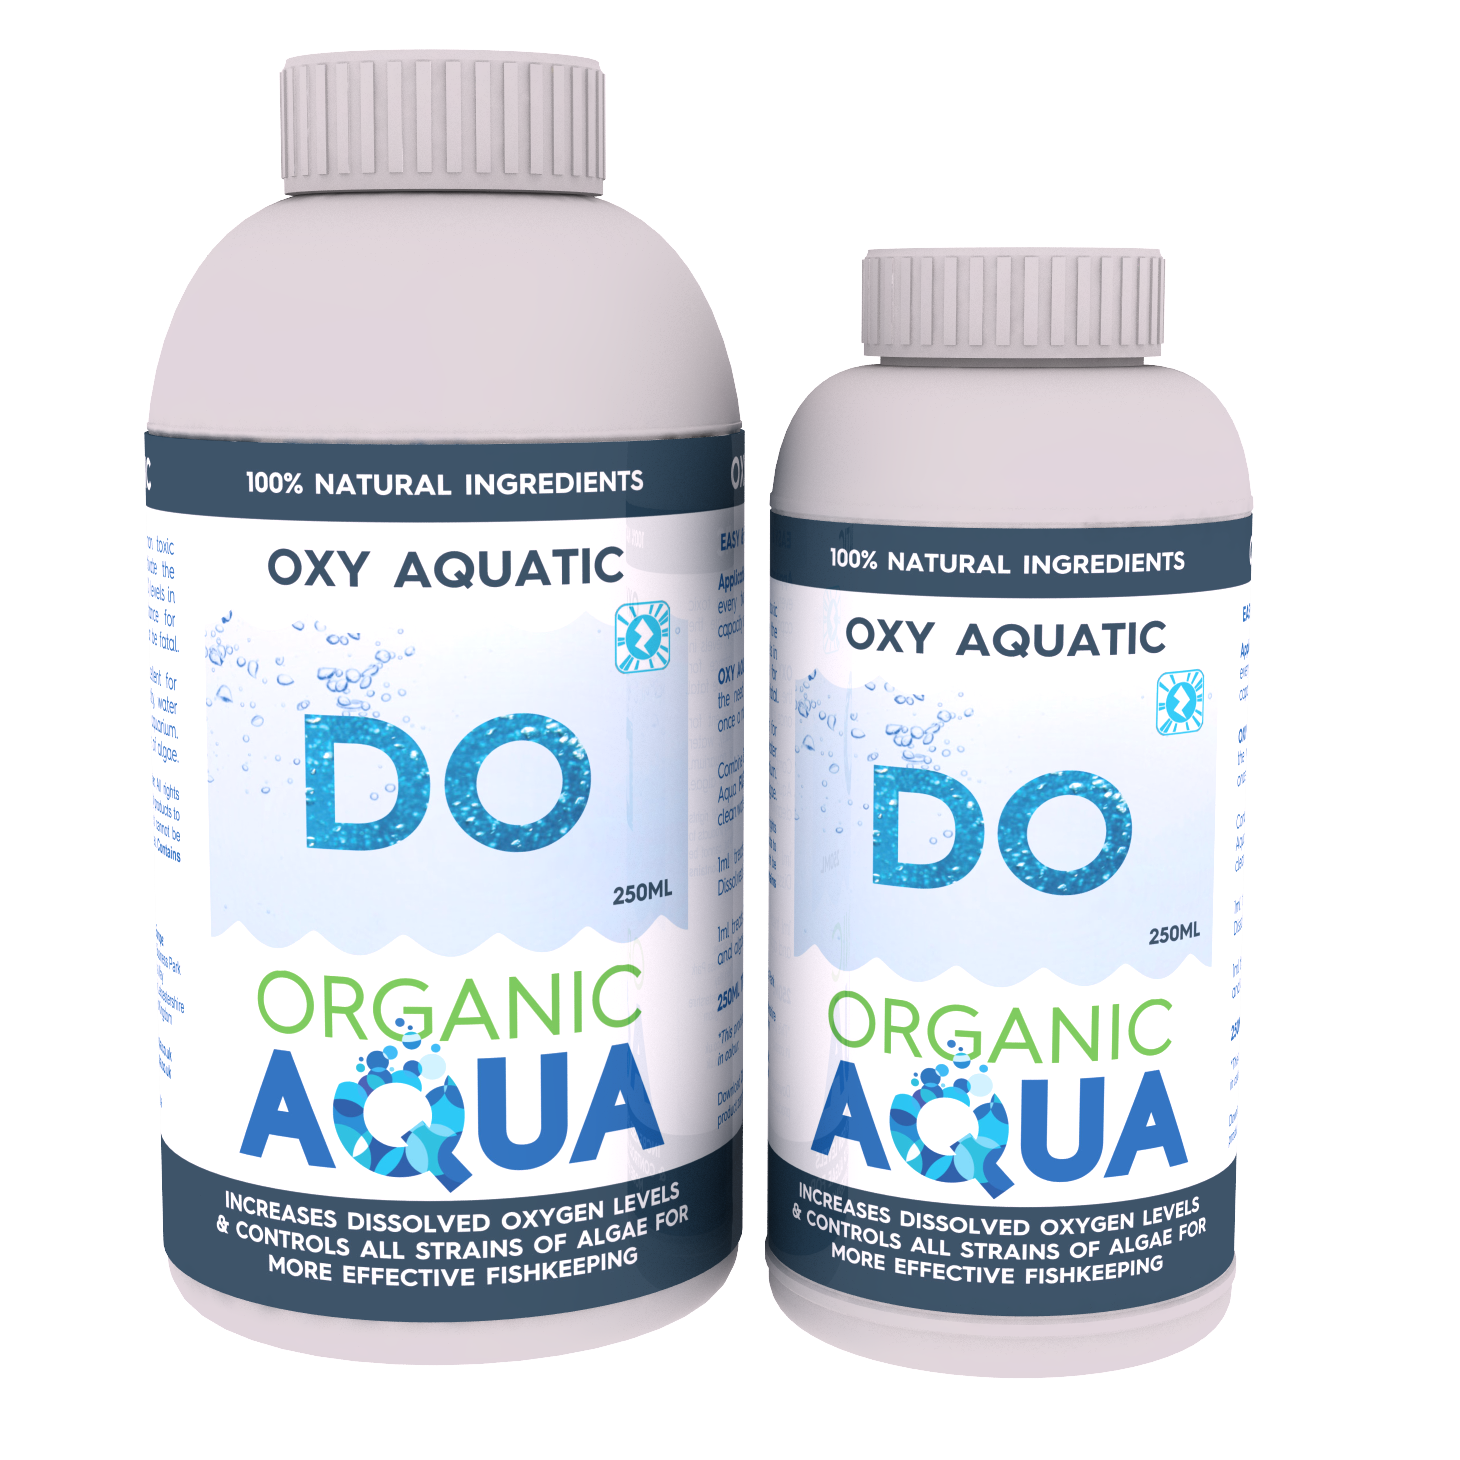 Organic Aqua OXY AQUATIC 500ml